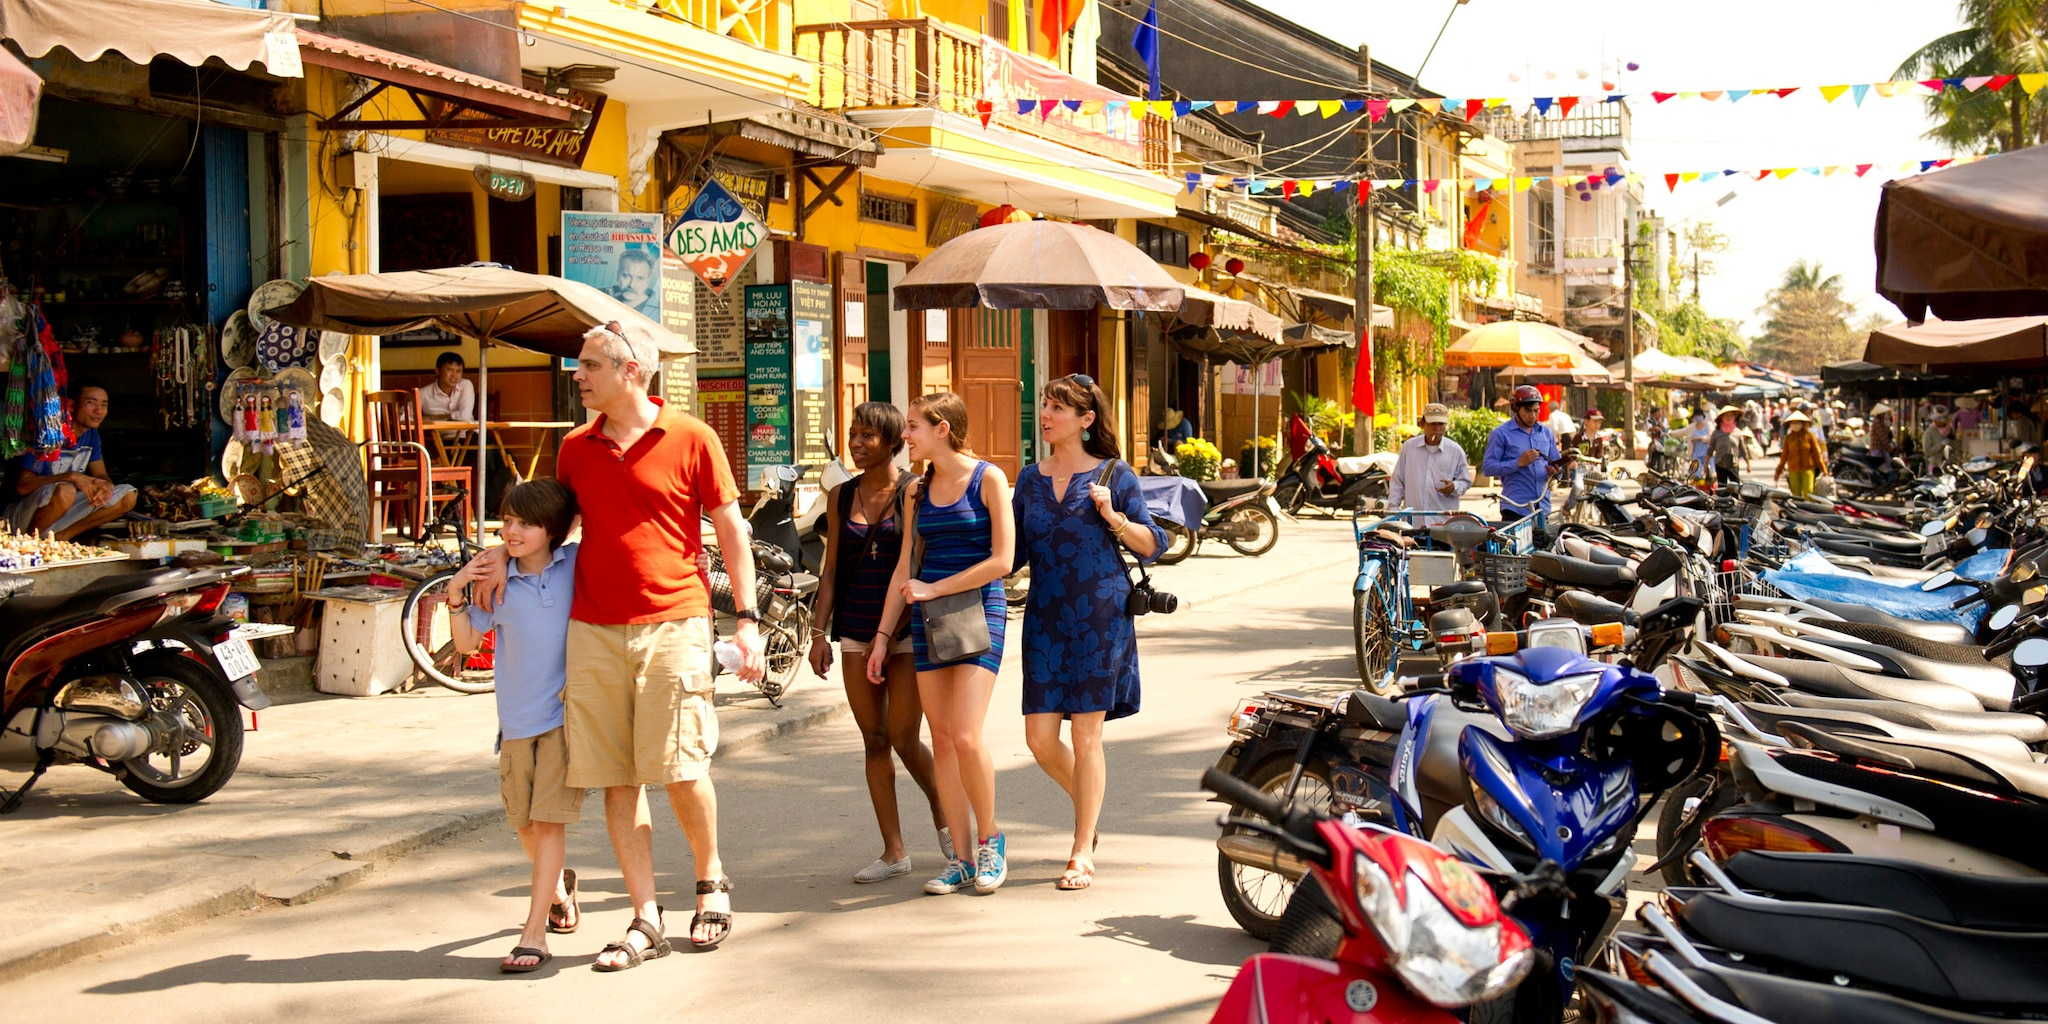 The village of Hoi An is one stop on the Vietnam vacation